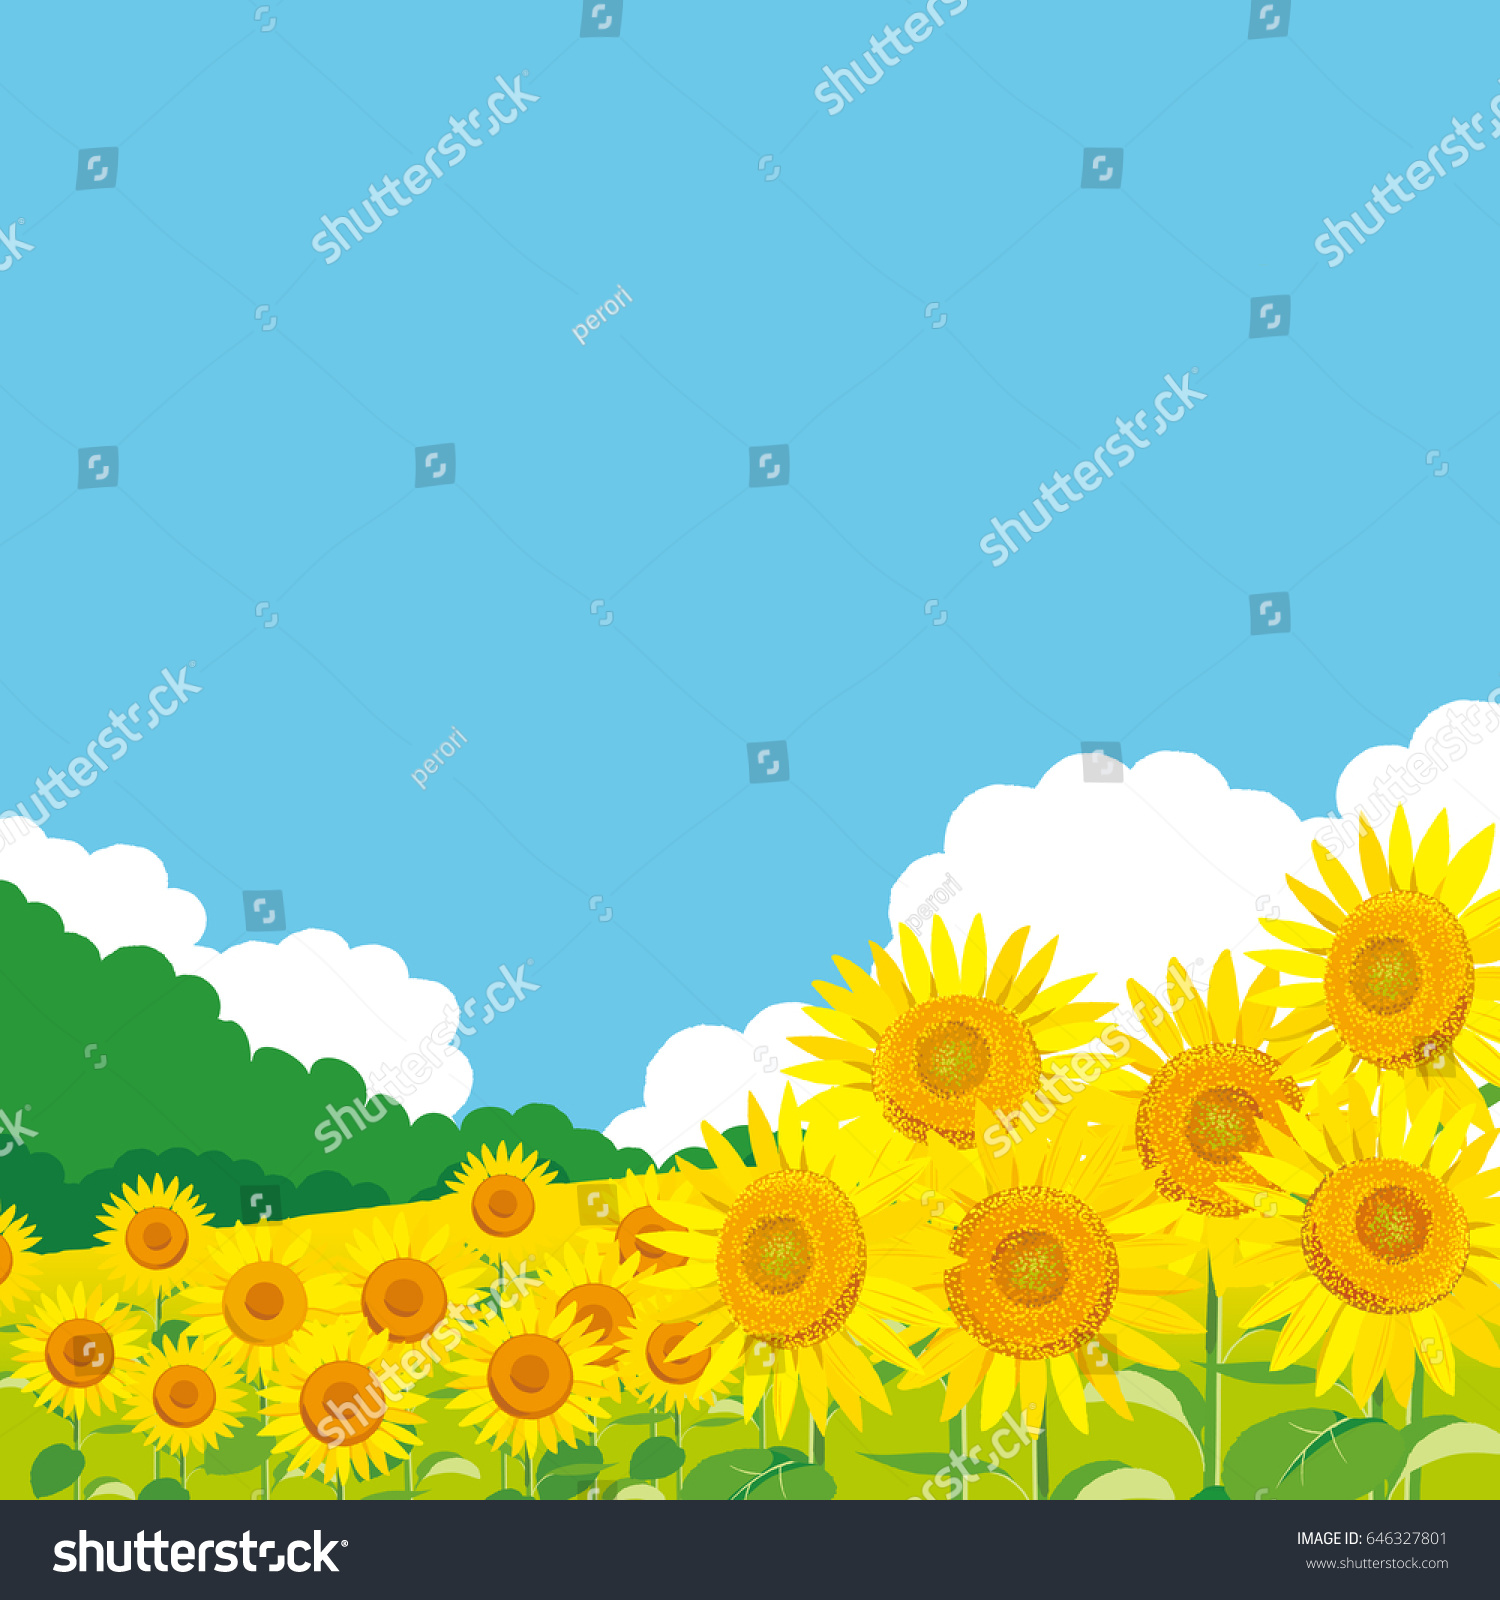 vector illustration wallpaper background landscape sunflowers stock